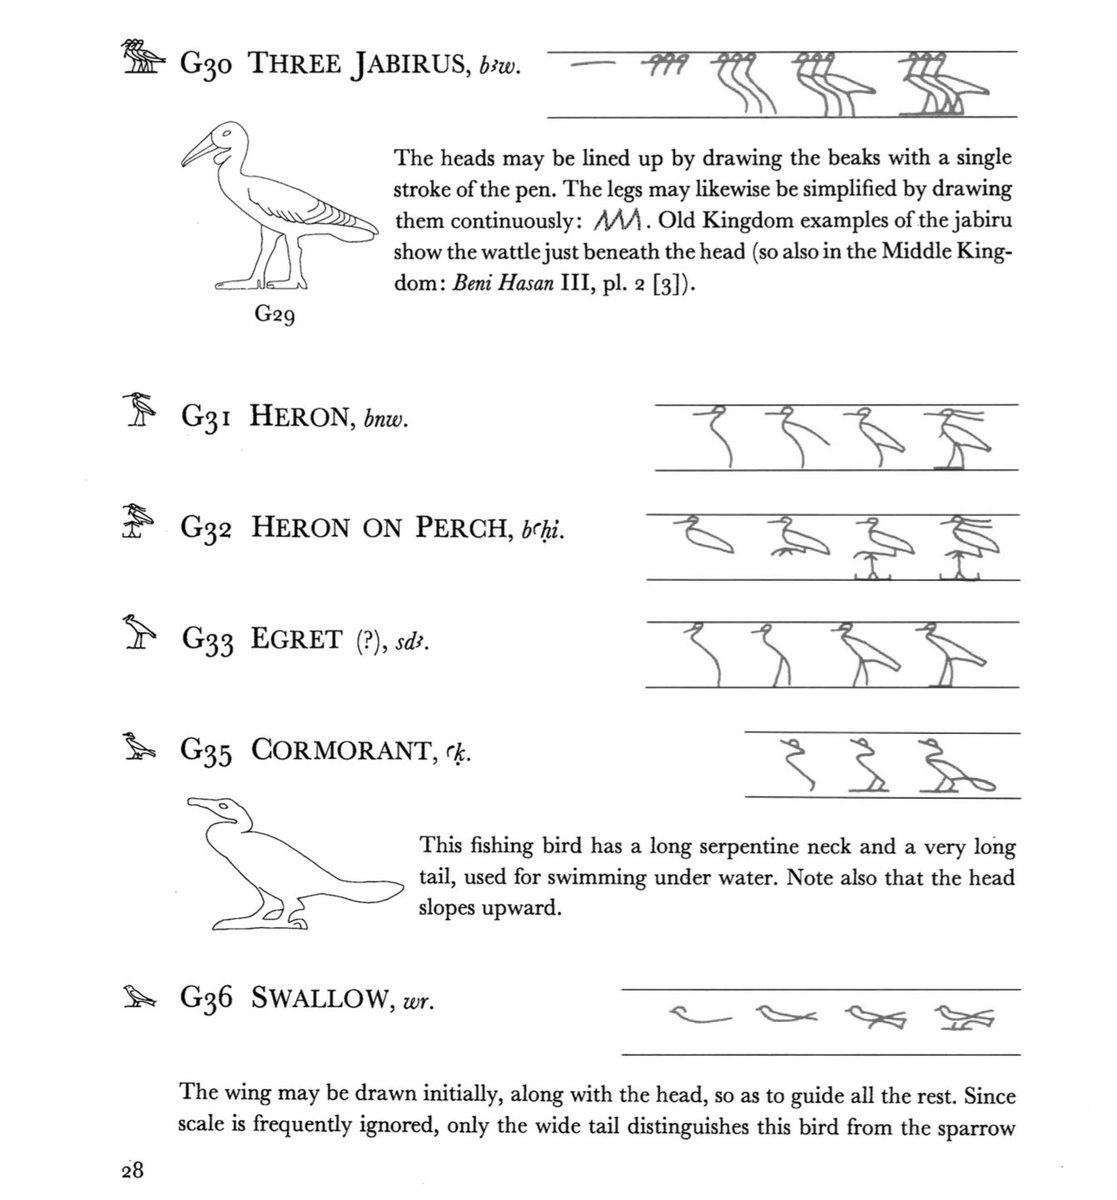 Calligraphy Fonts Books Pdf Edward Tufte On Twitter